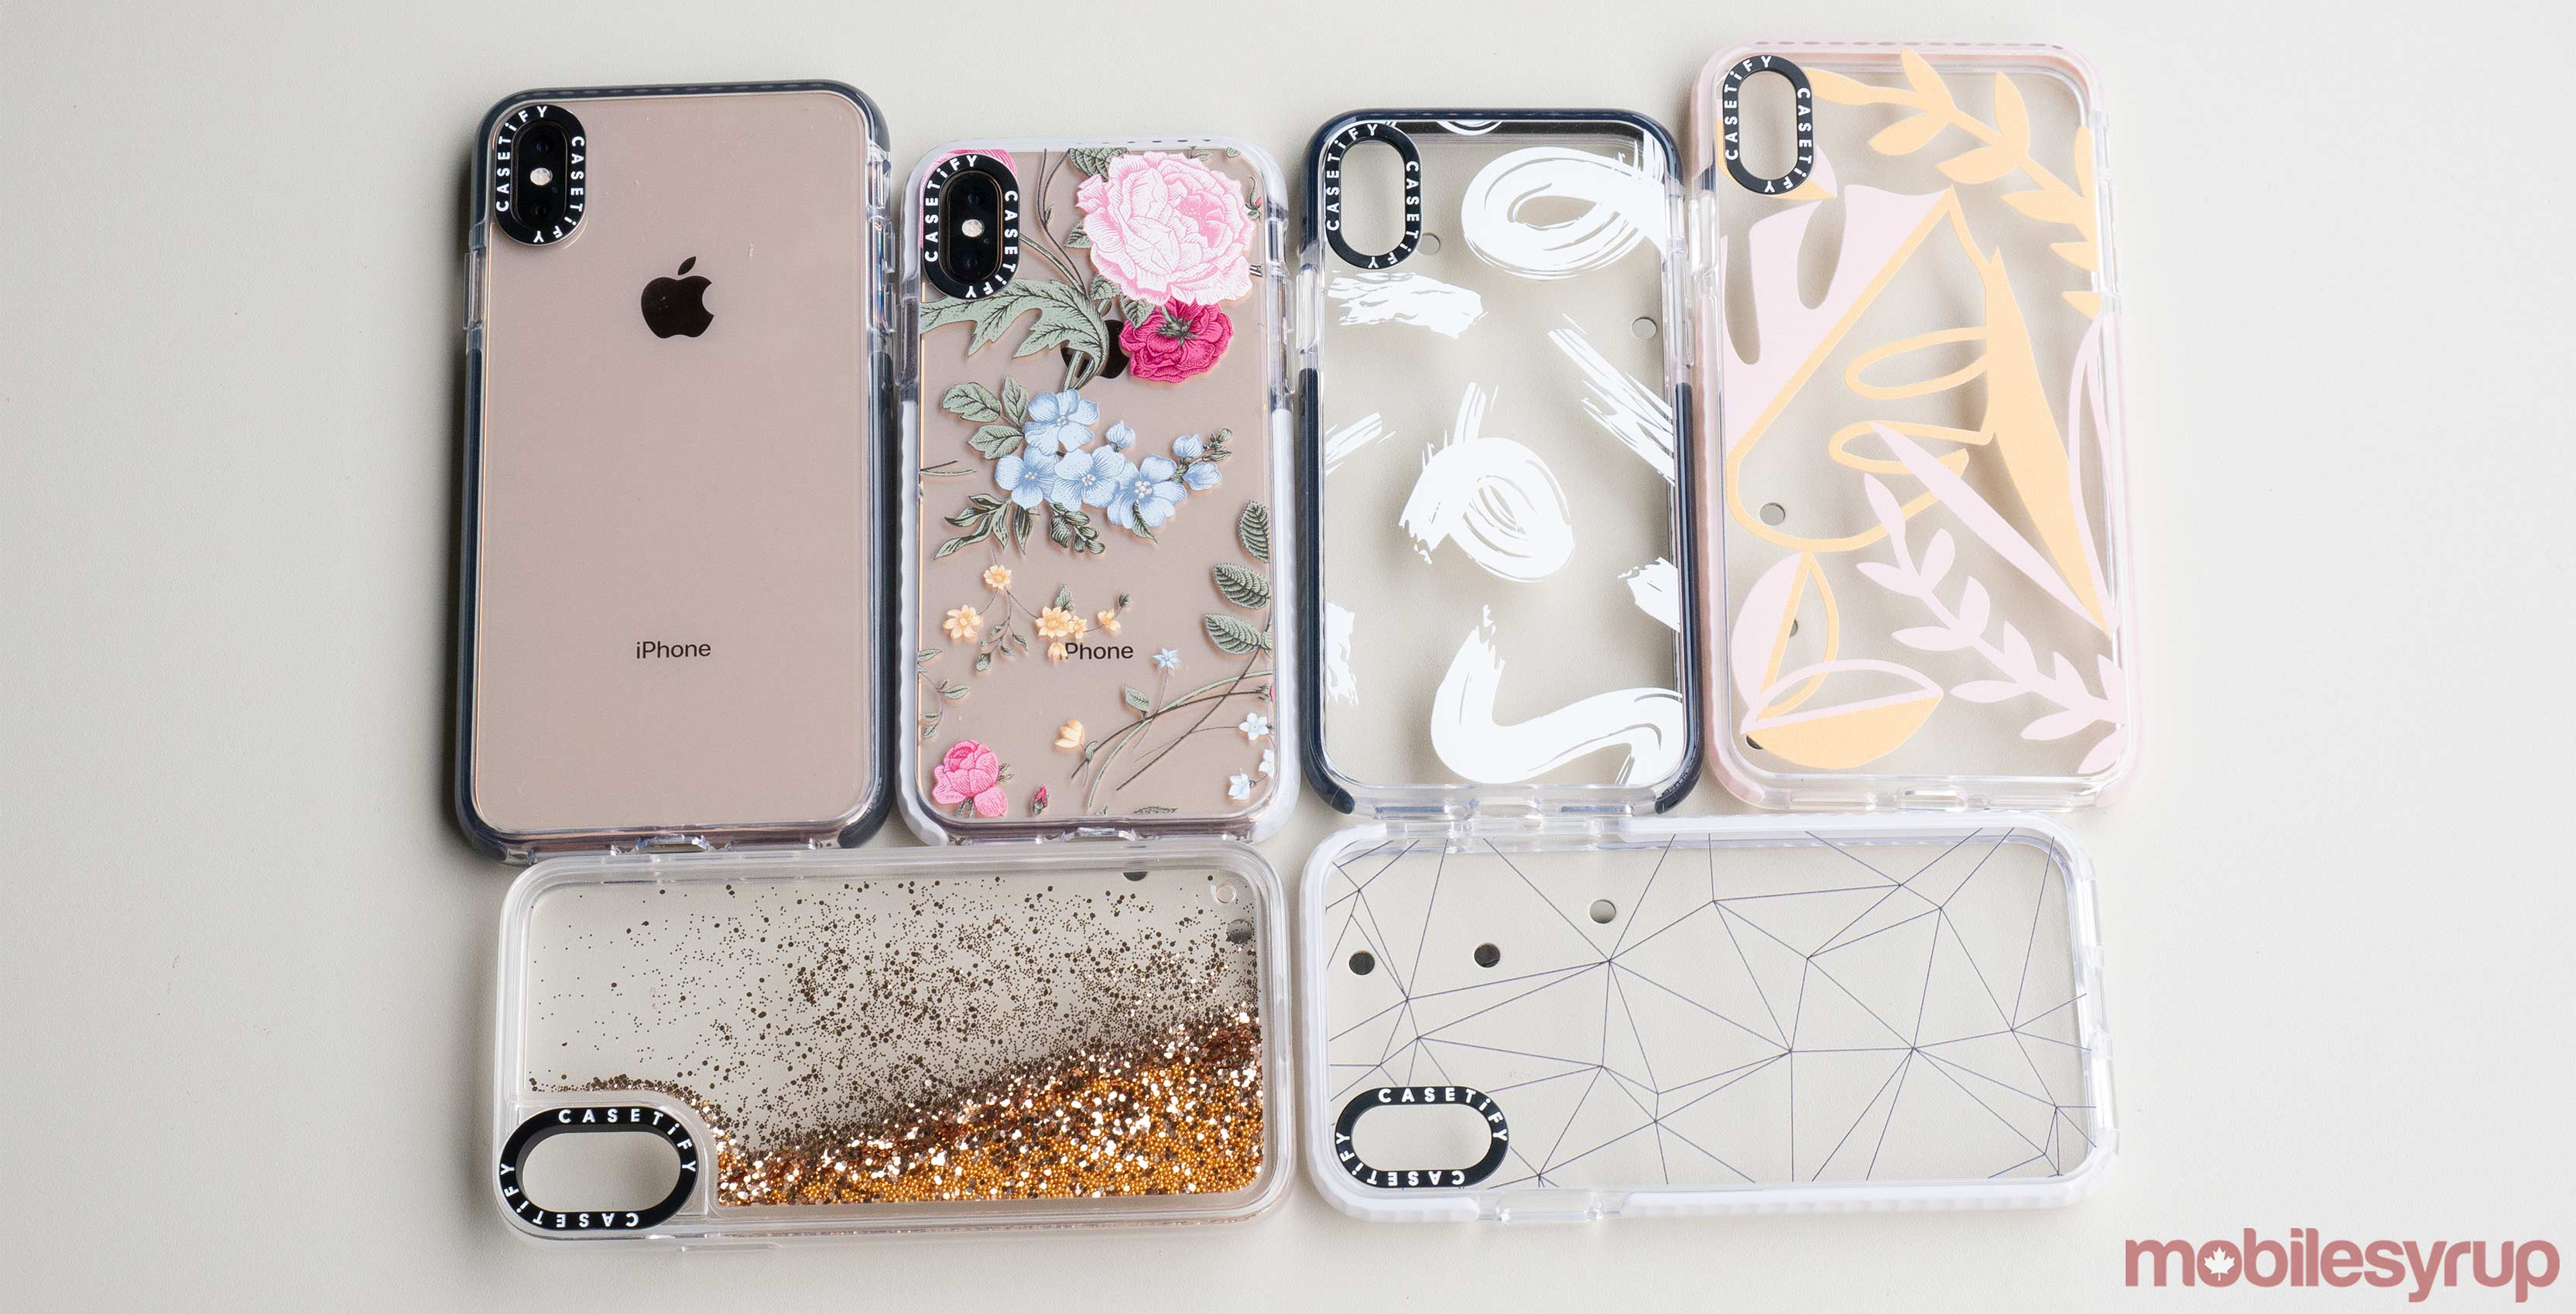 online retailer 6517a 993bf Here are Casetify's top iPhone XS and iPhone XS Max cases